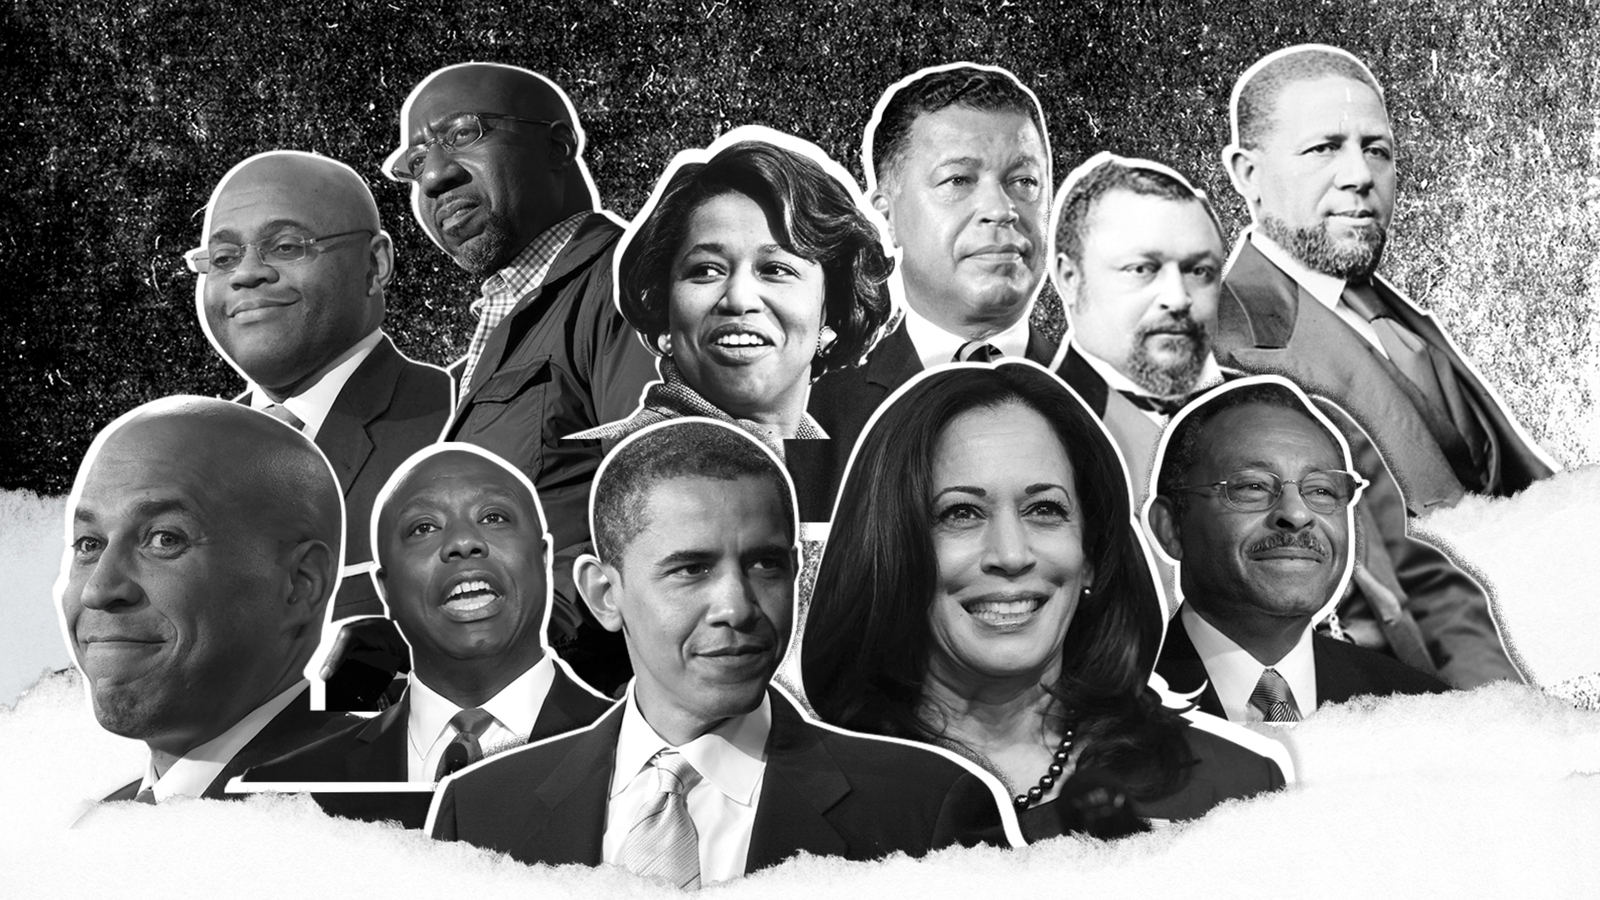 In the nearly 232-year history of the US Senate there have only been 11 Black senators